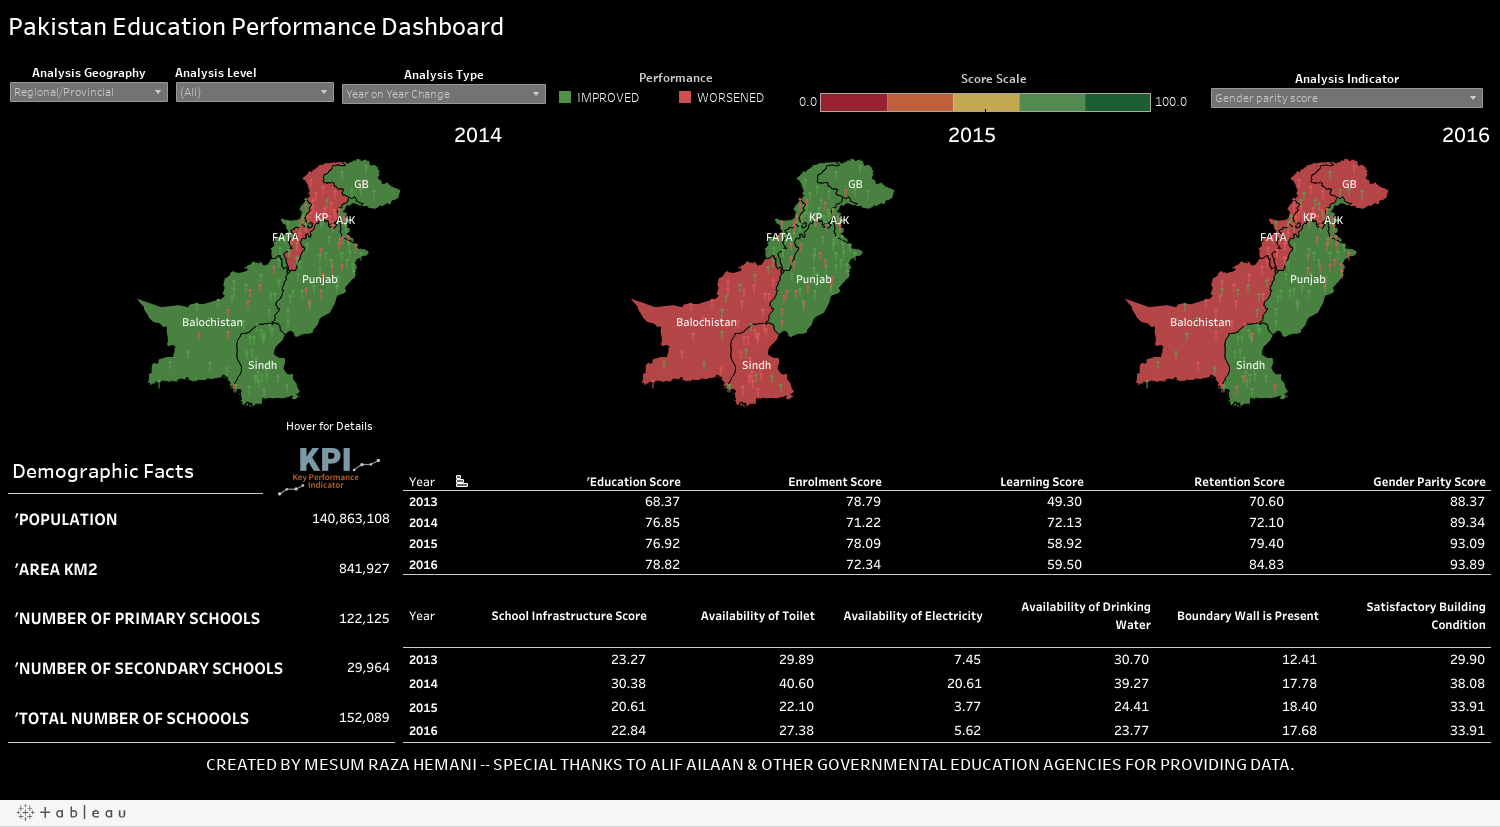 https://public.tableau.com/static/images/Pa/PakistanEducationalPerformance-Dashboard/PakistanEducationPerformanceDashboard/1.png